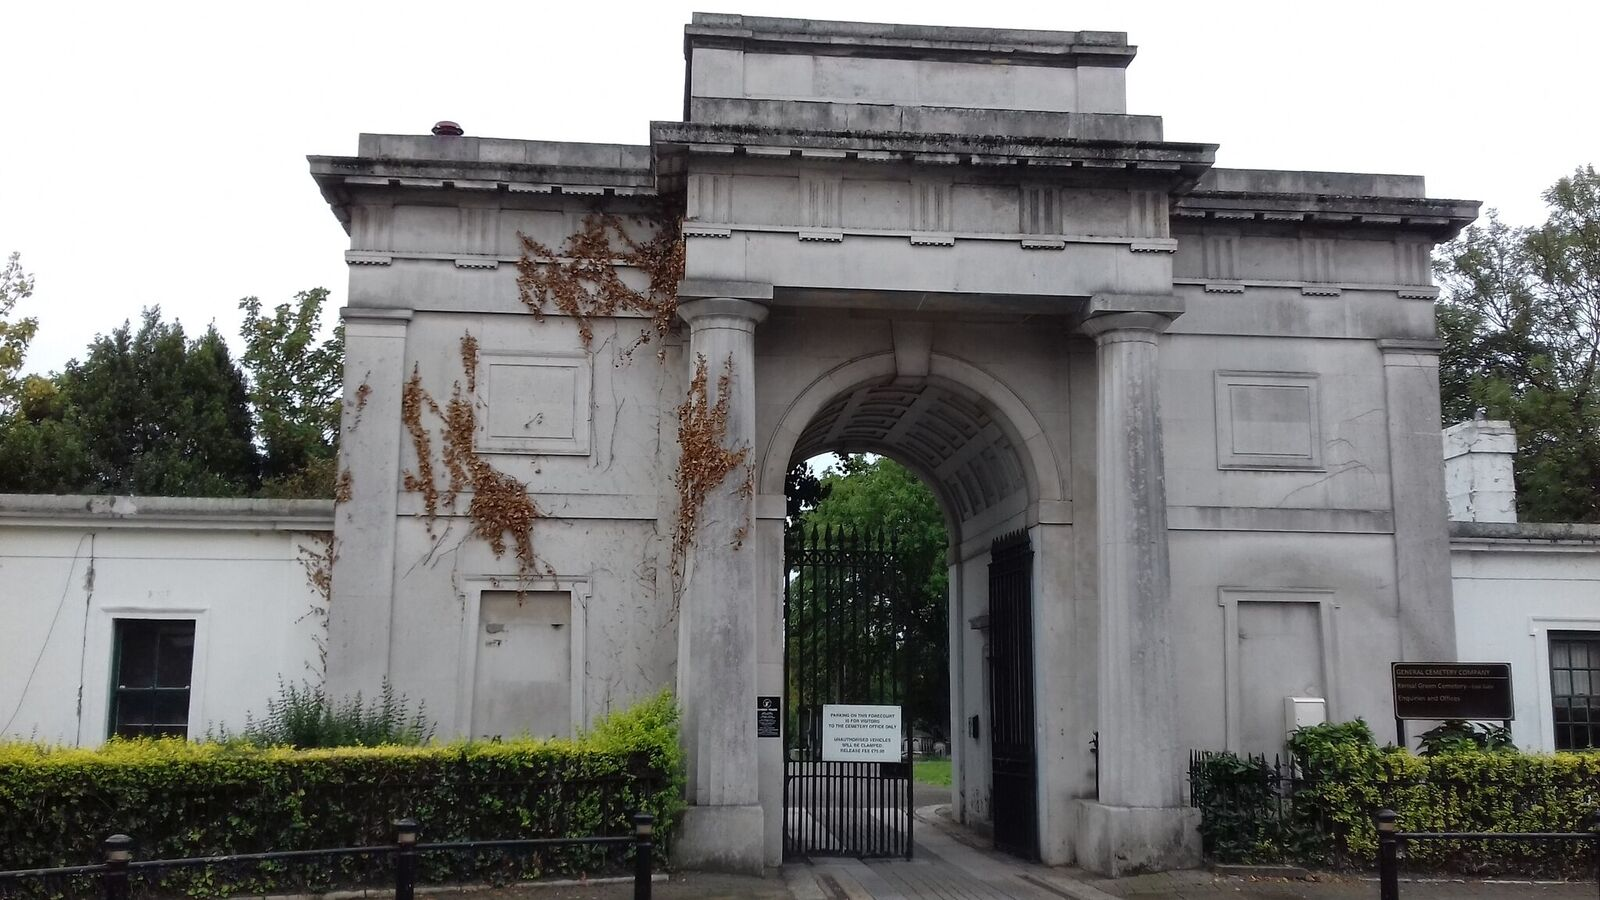 ENTRANCE TO KENSAL GREEN CEMETERY